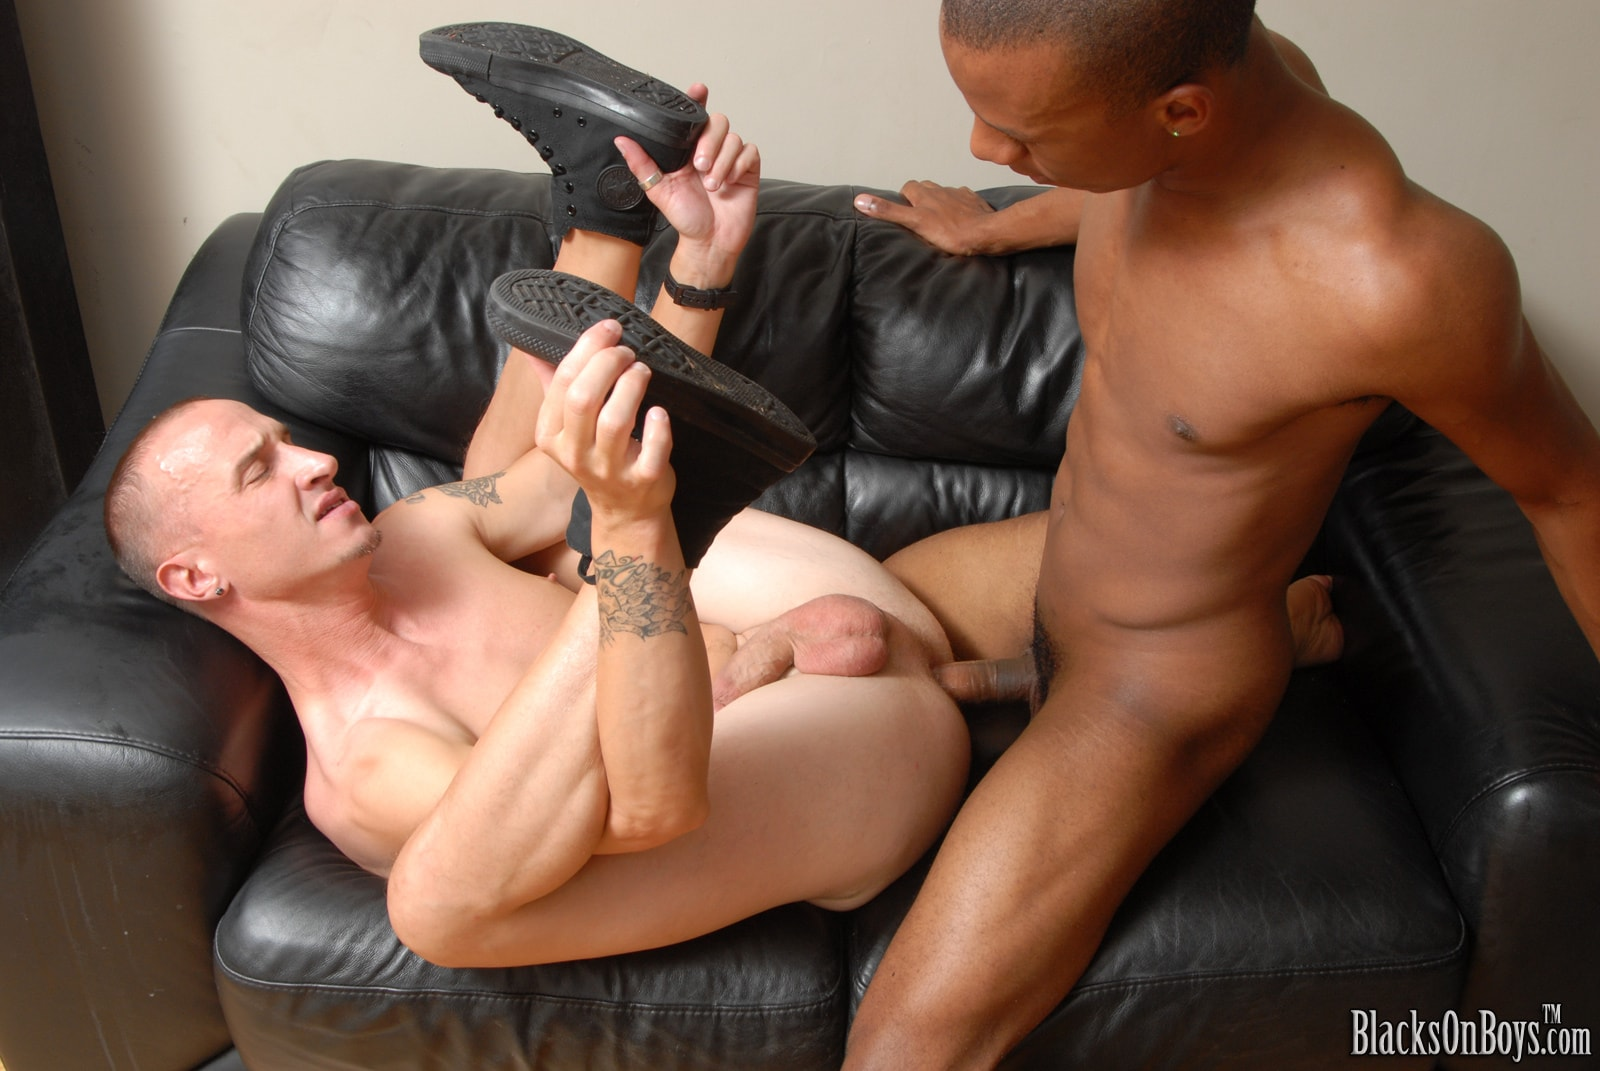 Dogfart Men '- Blacks On Boys' starring Austin Dallas (Photo 26)